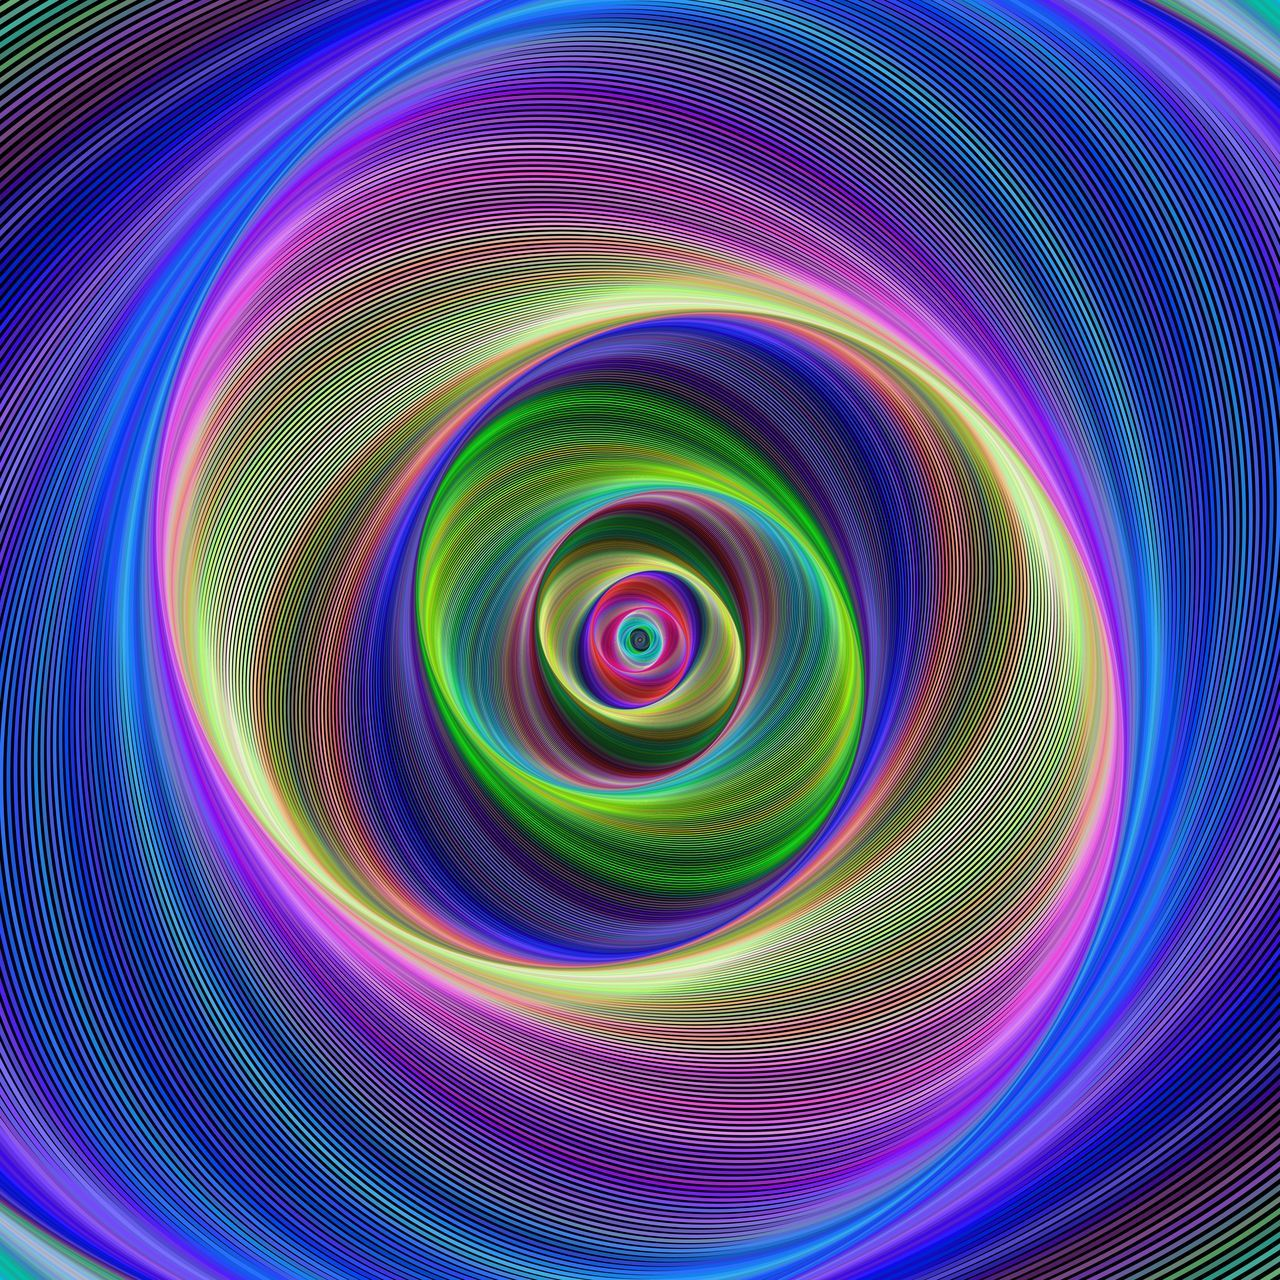 abstract, multi colored, pattern, backgrounds, rainbow, purple, swirl, full frame, no people, concentric, inspiration, illuminated, spectrum, neon, space, black background, day